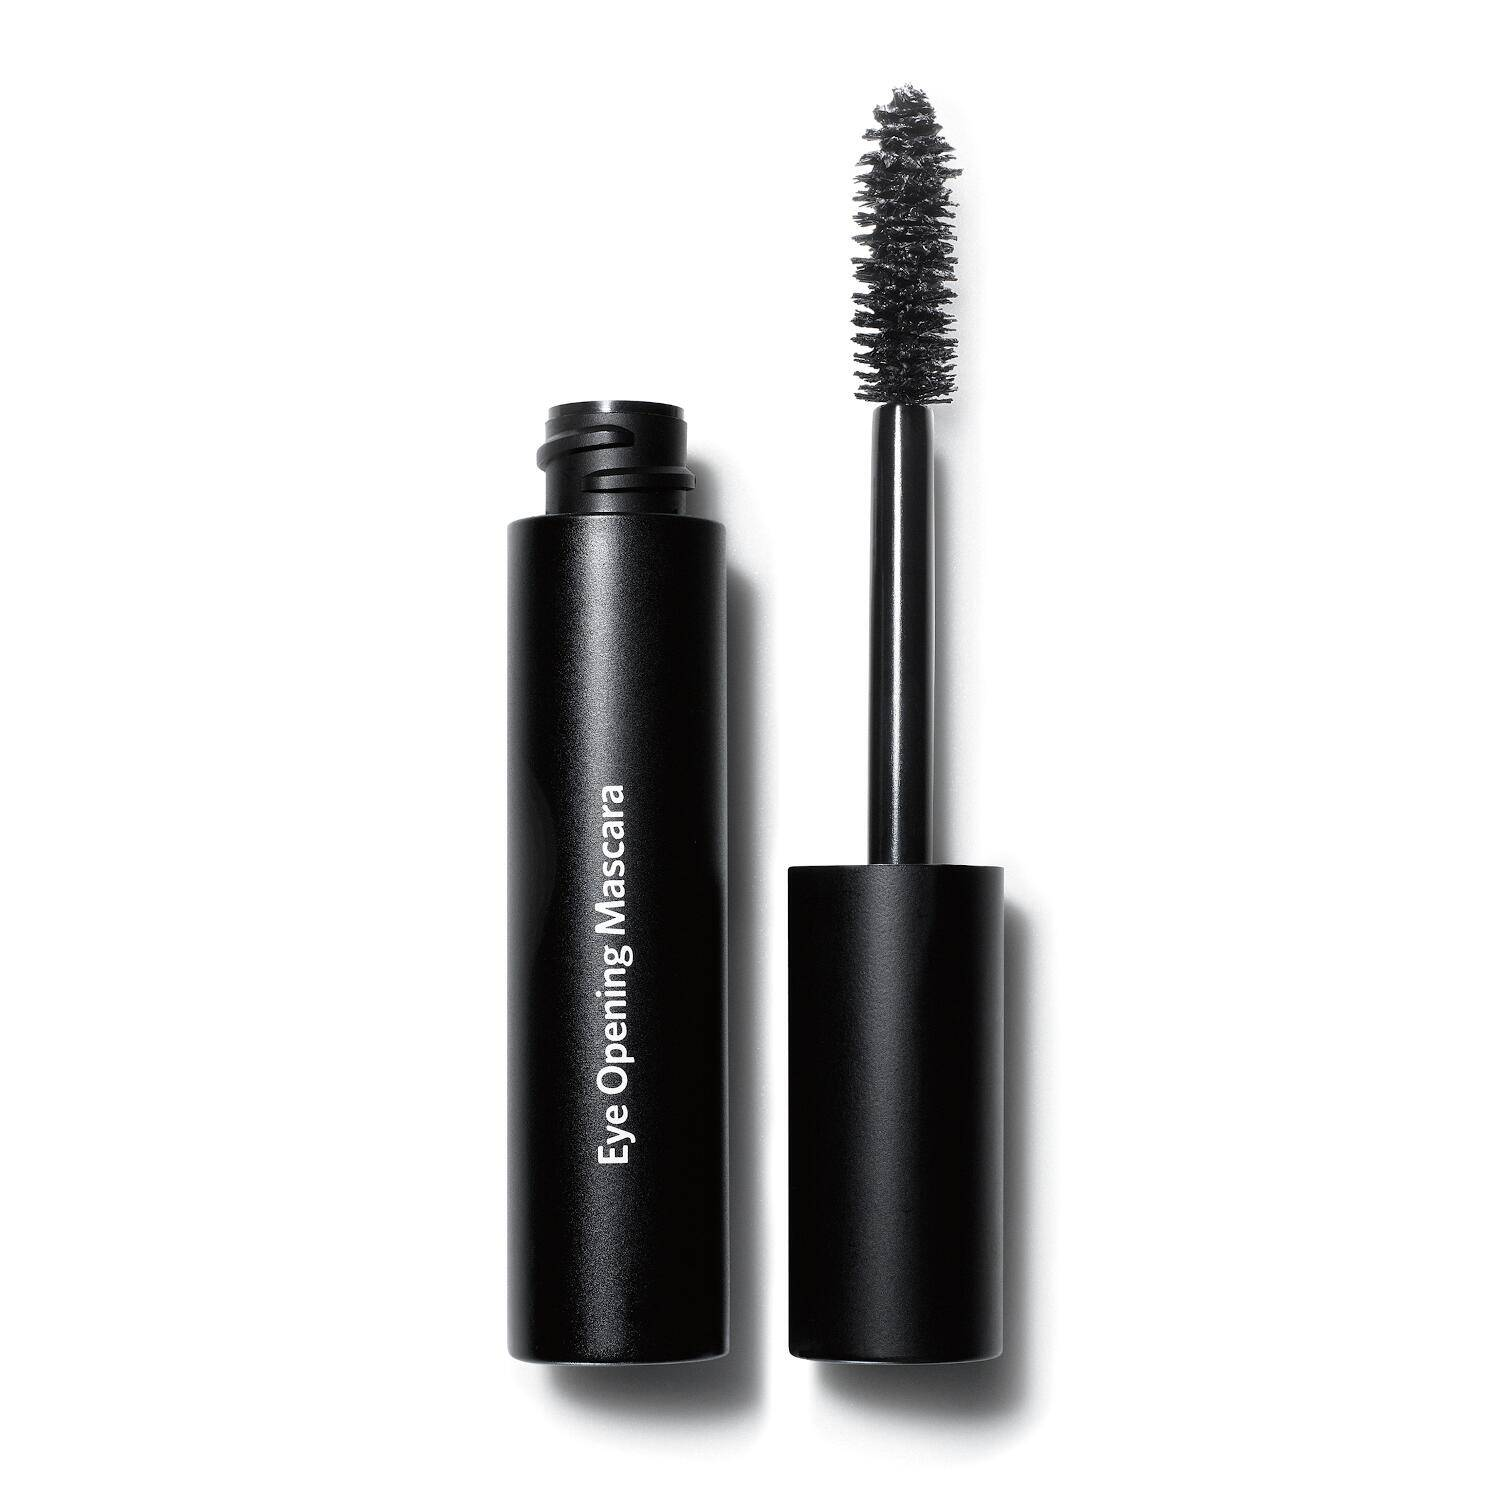 Bobbi Brown Eye Opening Mascara (Black | 12 ml) Make Up, Augen, Wimperntusche, Augen von Bobbi Brown